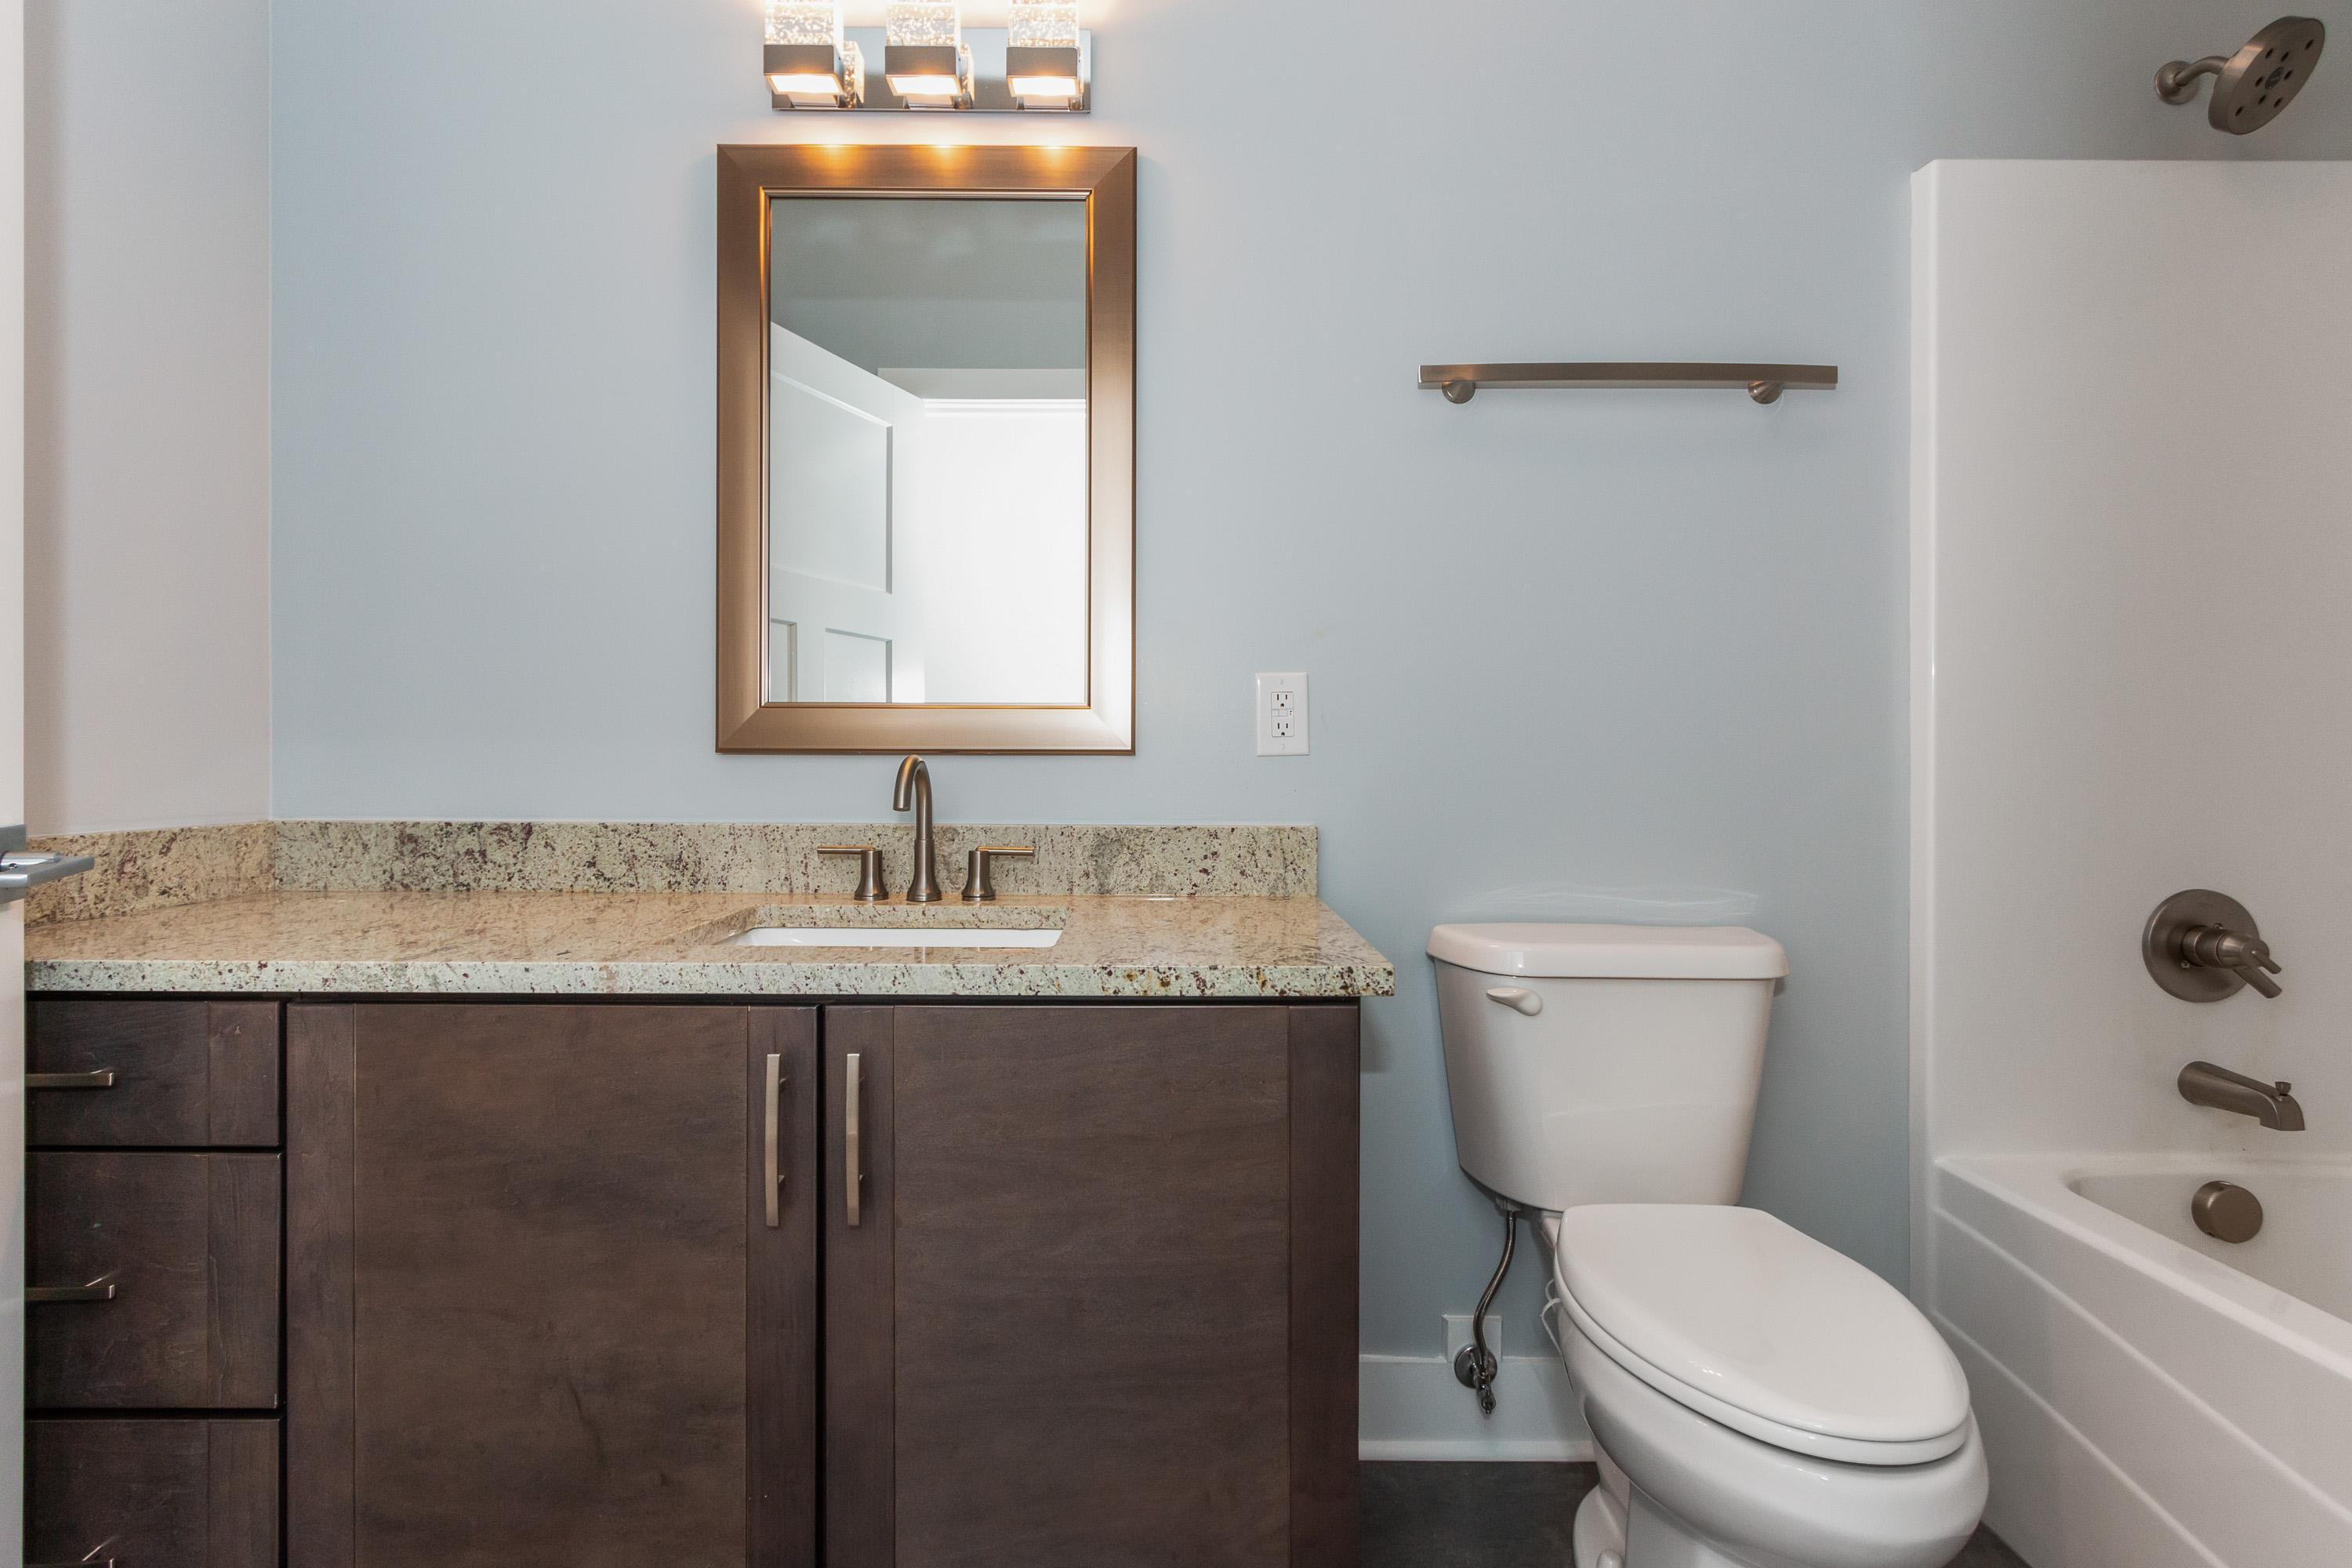 Bathroom featured in the Totten 2 By White Oak Homes in Indianapolis, IN